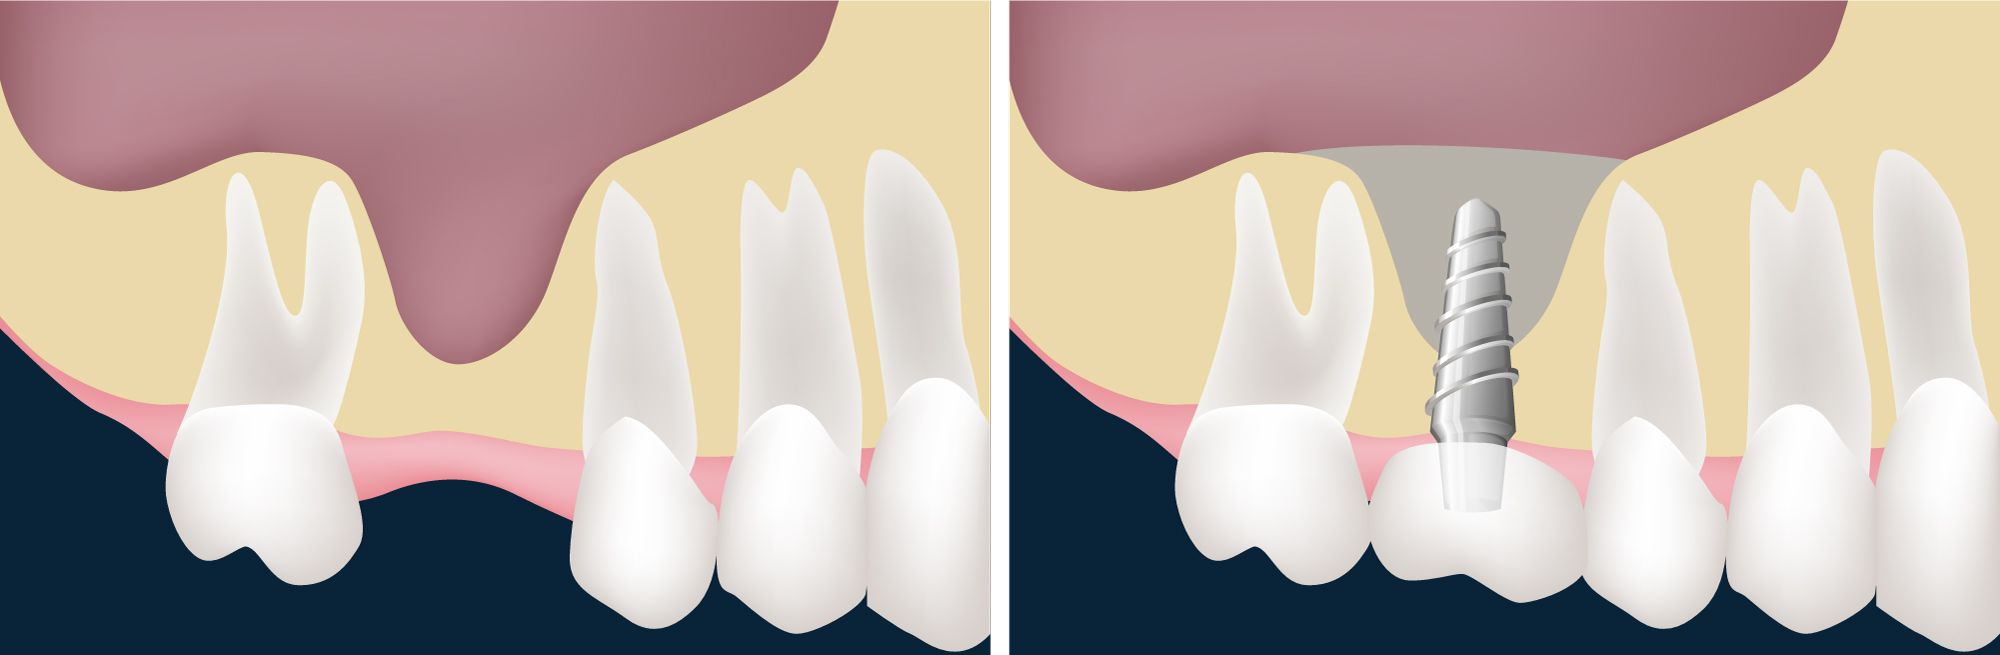 An illustration of a missing tooth and a dental implant